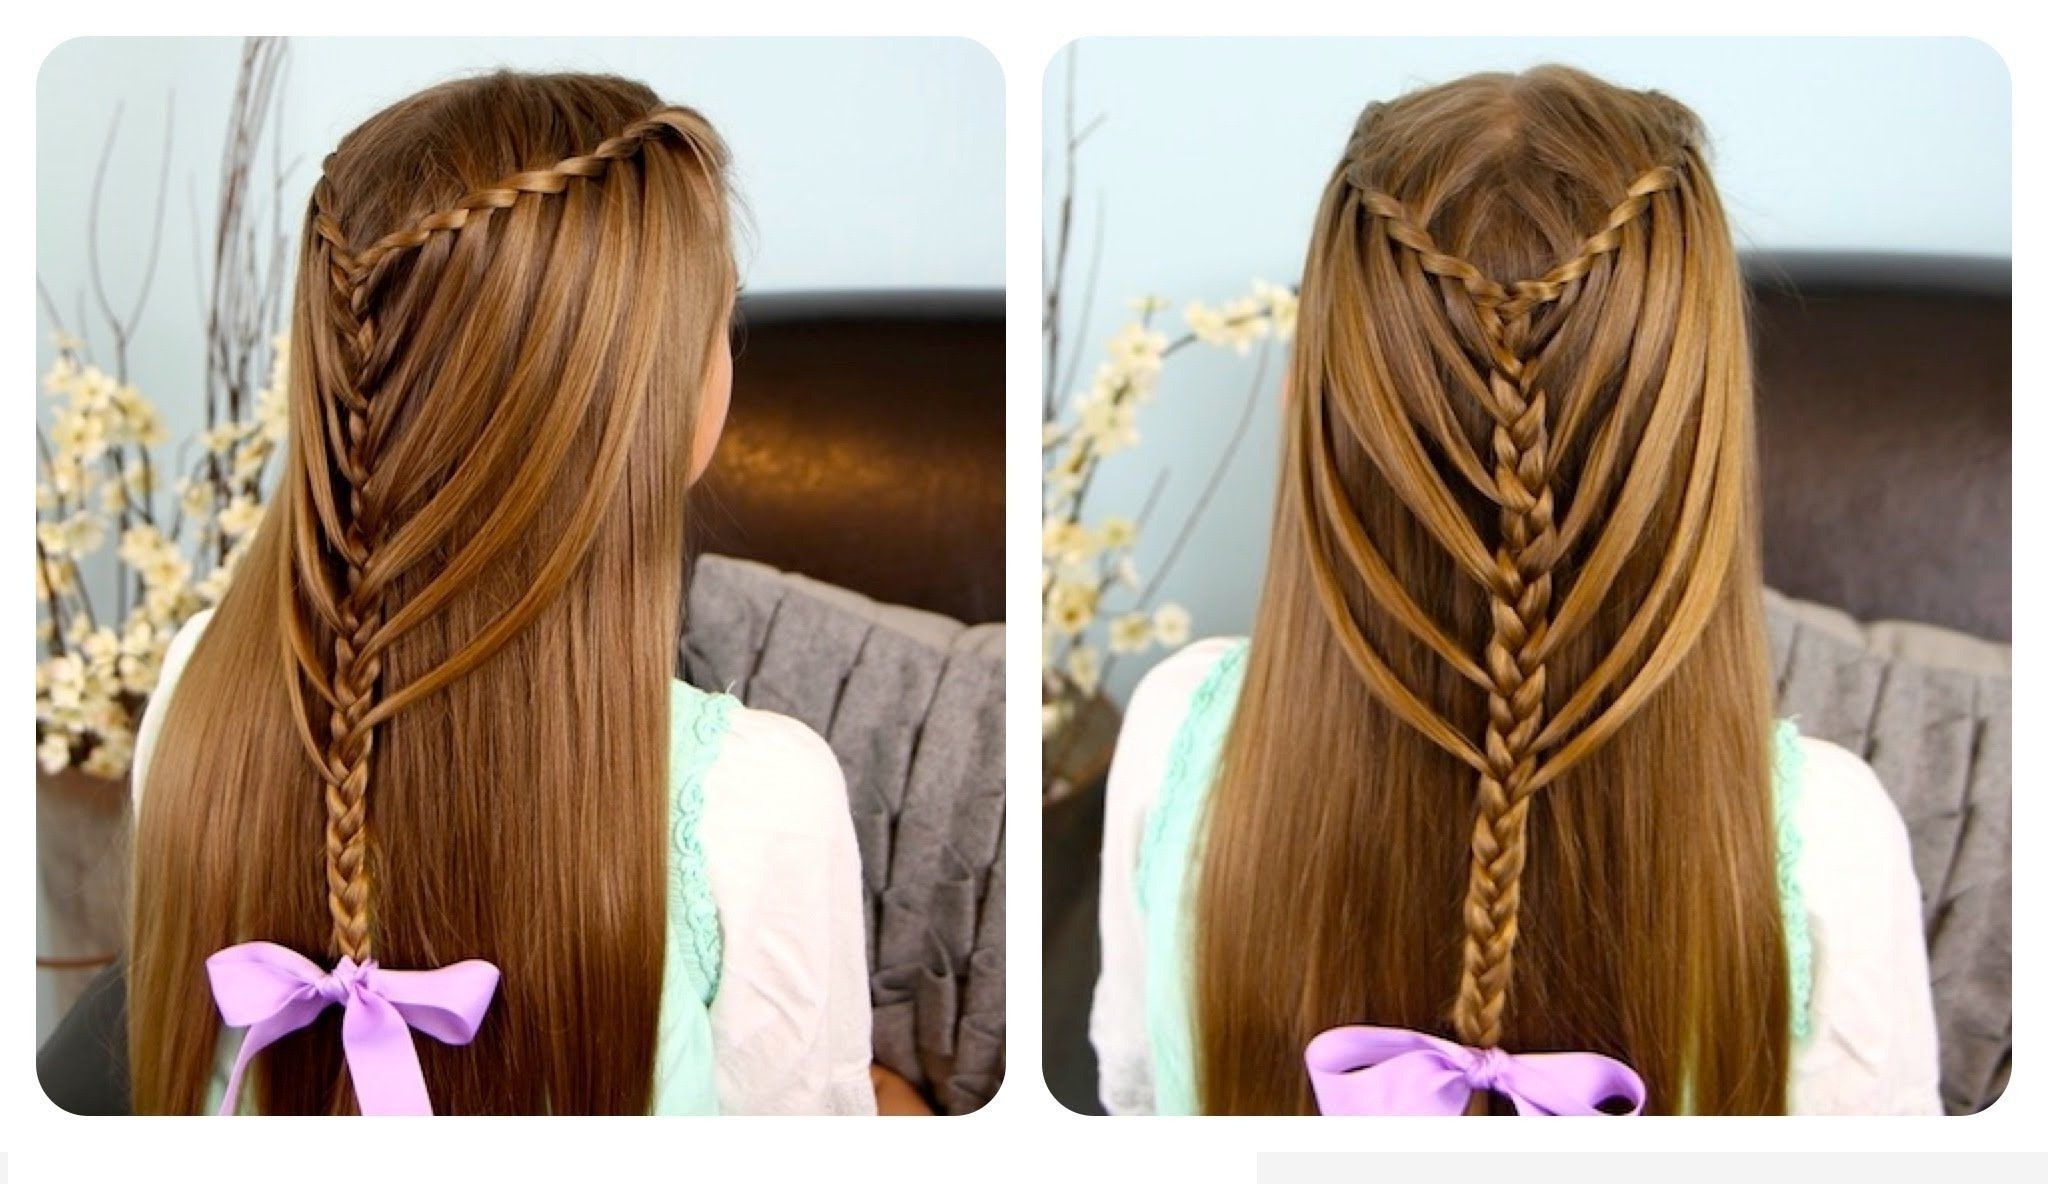 Shocking Braid Hairstyles With Straight Hair Haircutsboyco Picture With Regard To Most Recent Braided Hairstyles For Straight Hair (View 6 of 15)